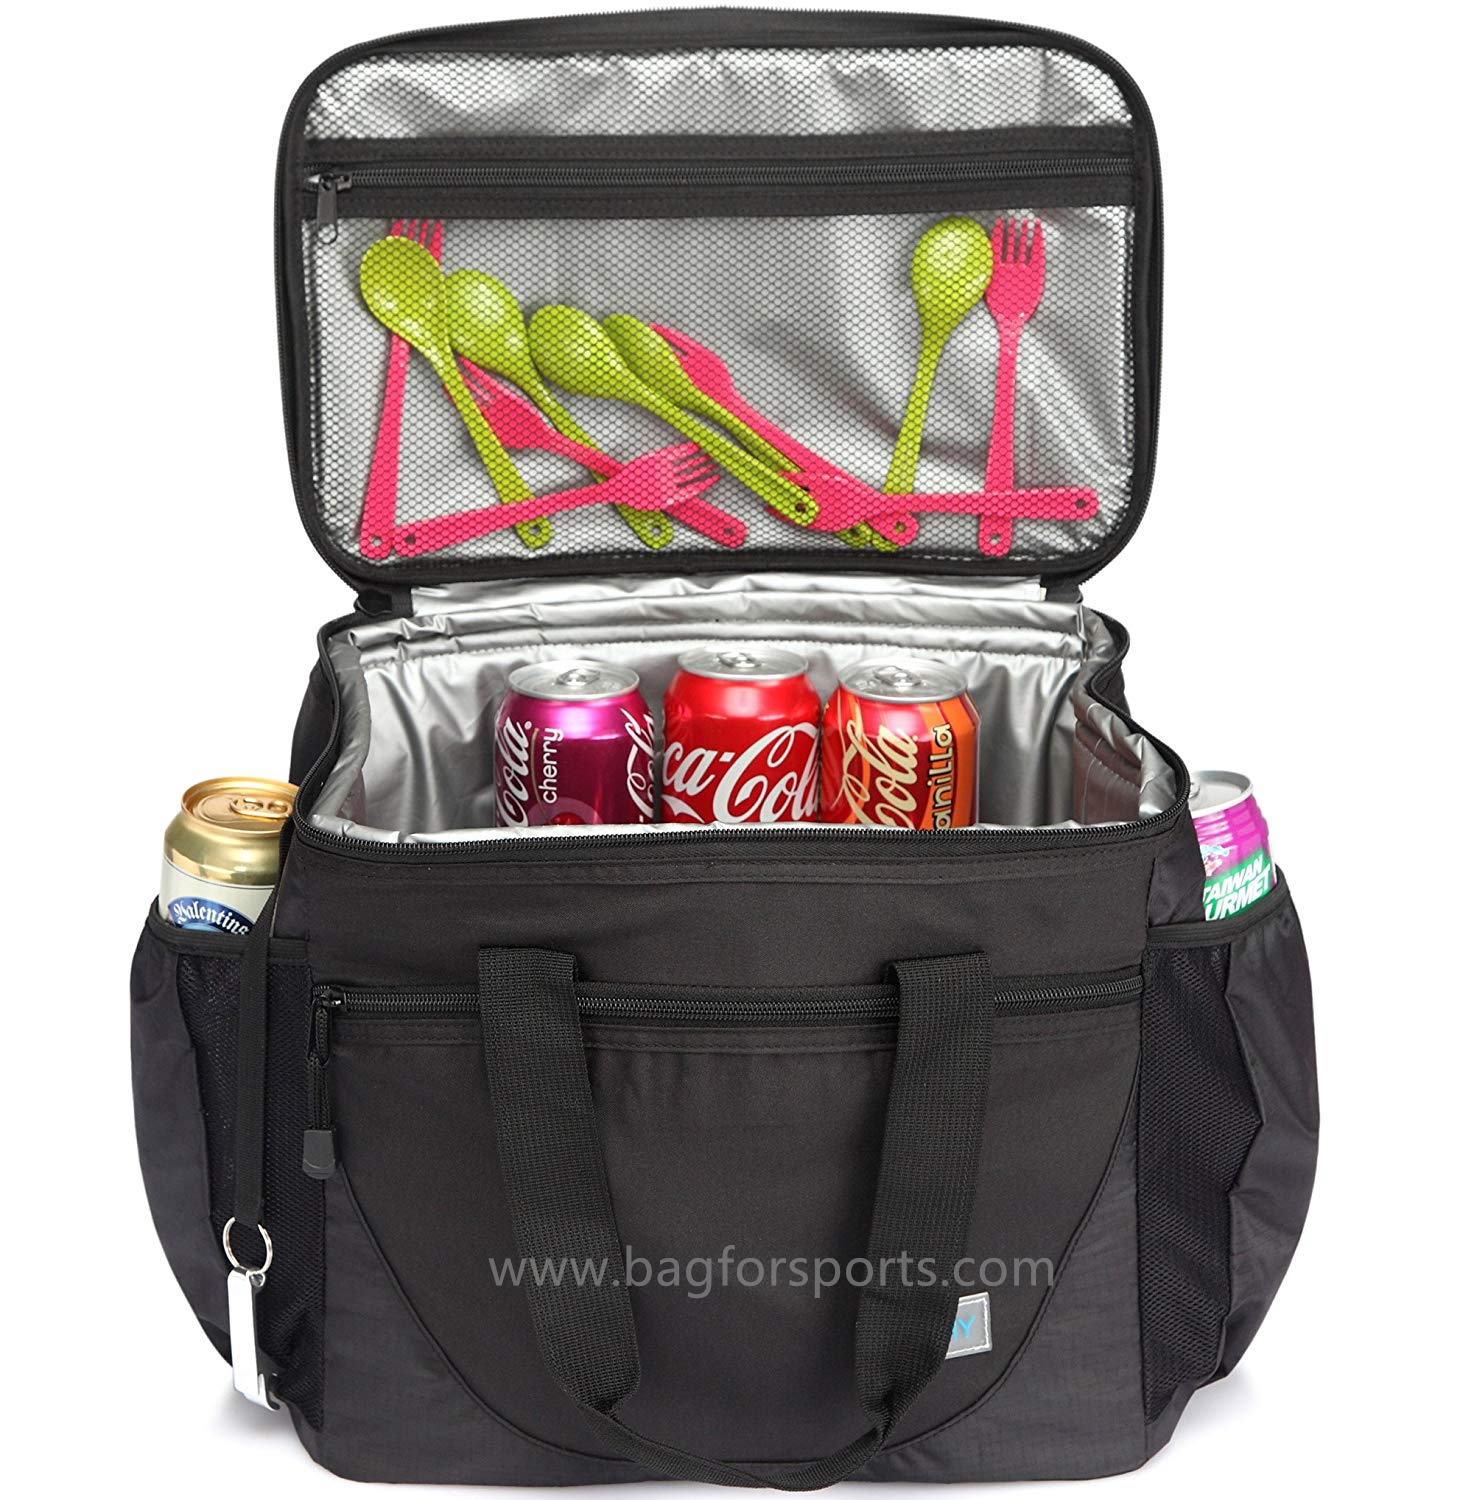 Large Cooler Bag, 30-Can 23L Insulated Leakproof Picnic Lunch Bag Multi-Pockets for Camping, Beach,